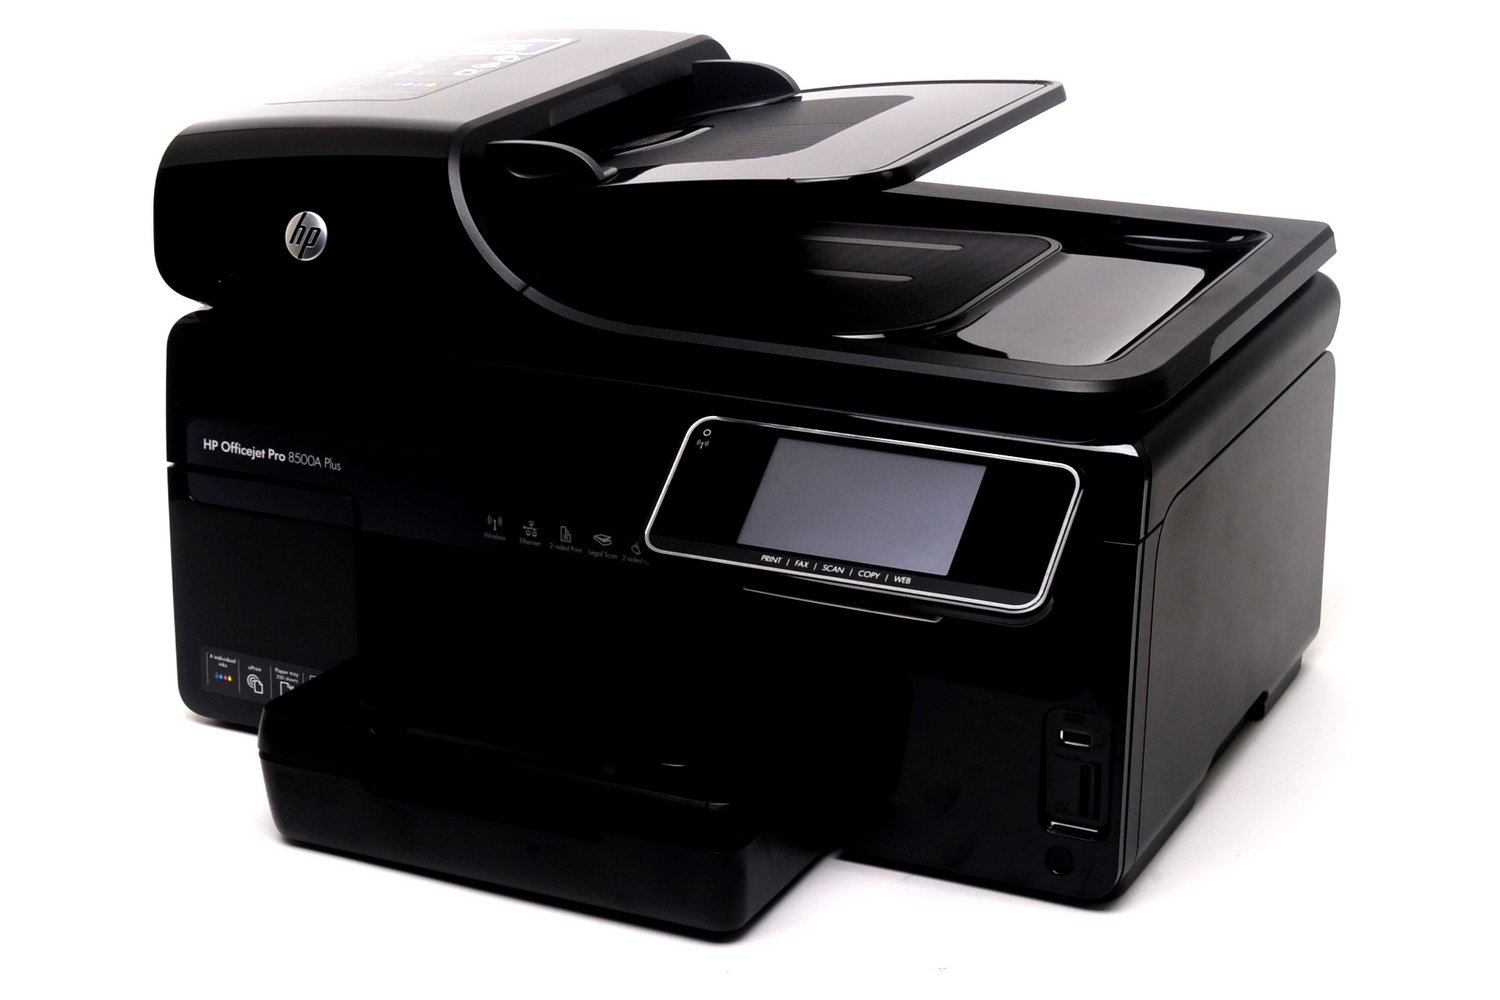 Hp Officejet Pro 8500a Plus Review  Hp Officejet Pro 8500a Plus Review  This Inkjet Printer From